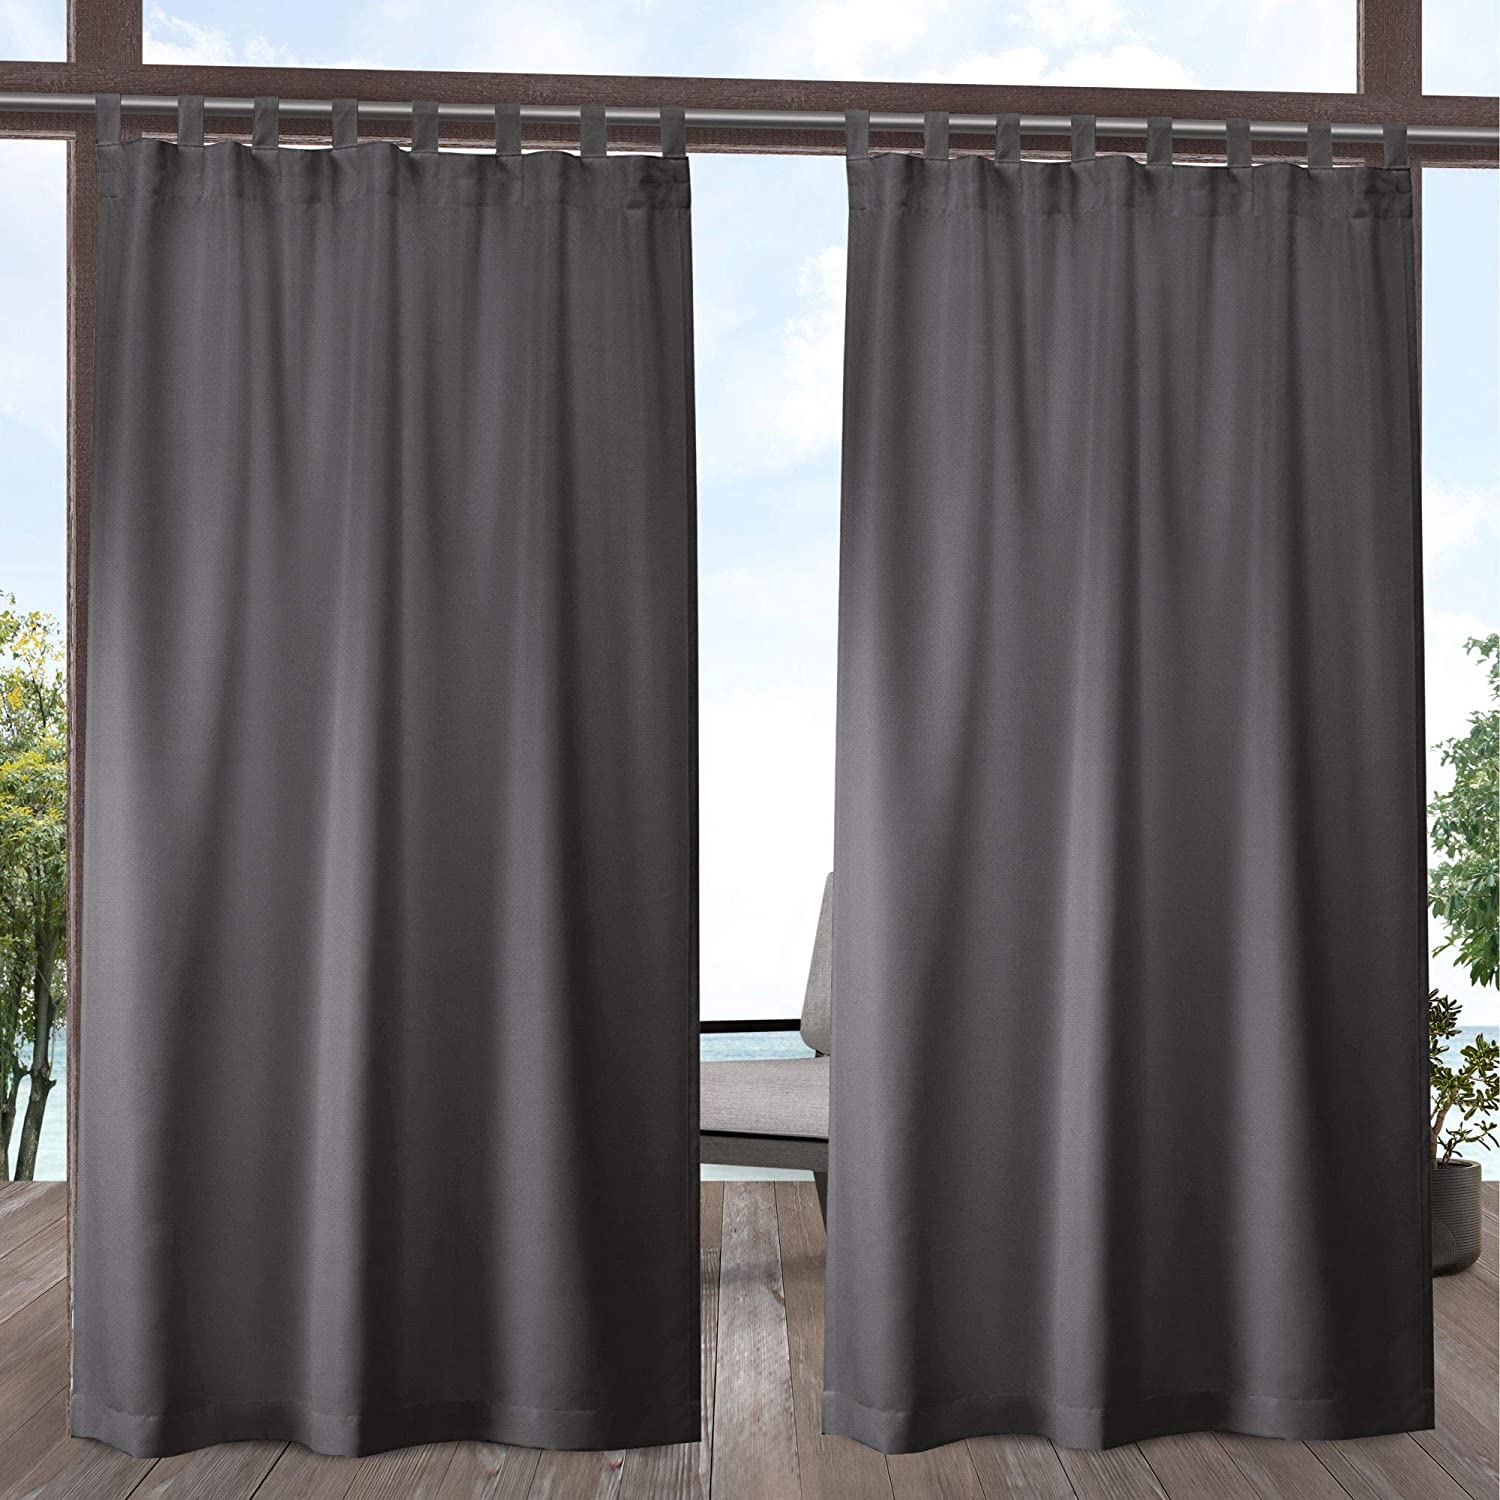 Exclusive Home Curtains Indoor/Outdoor Solid Cabana Tab Top Curtain Panel Pair, 54x108, Charcoal